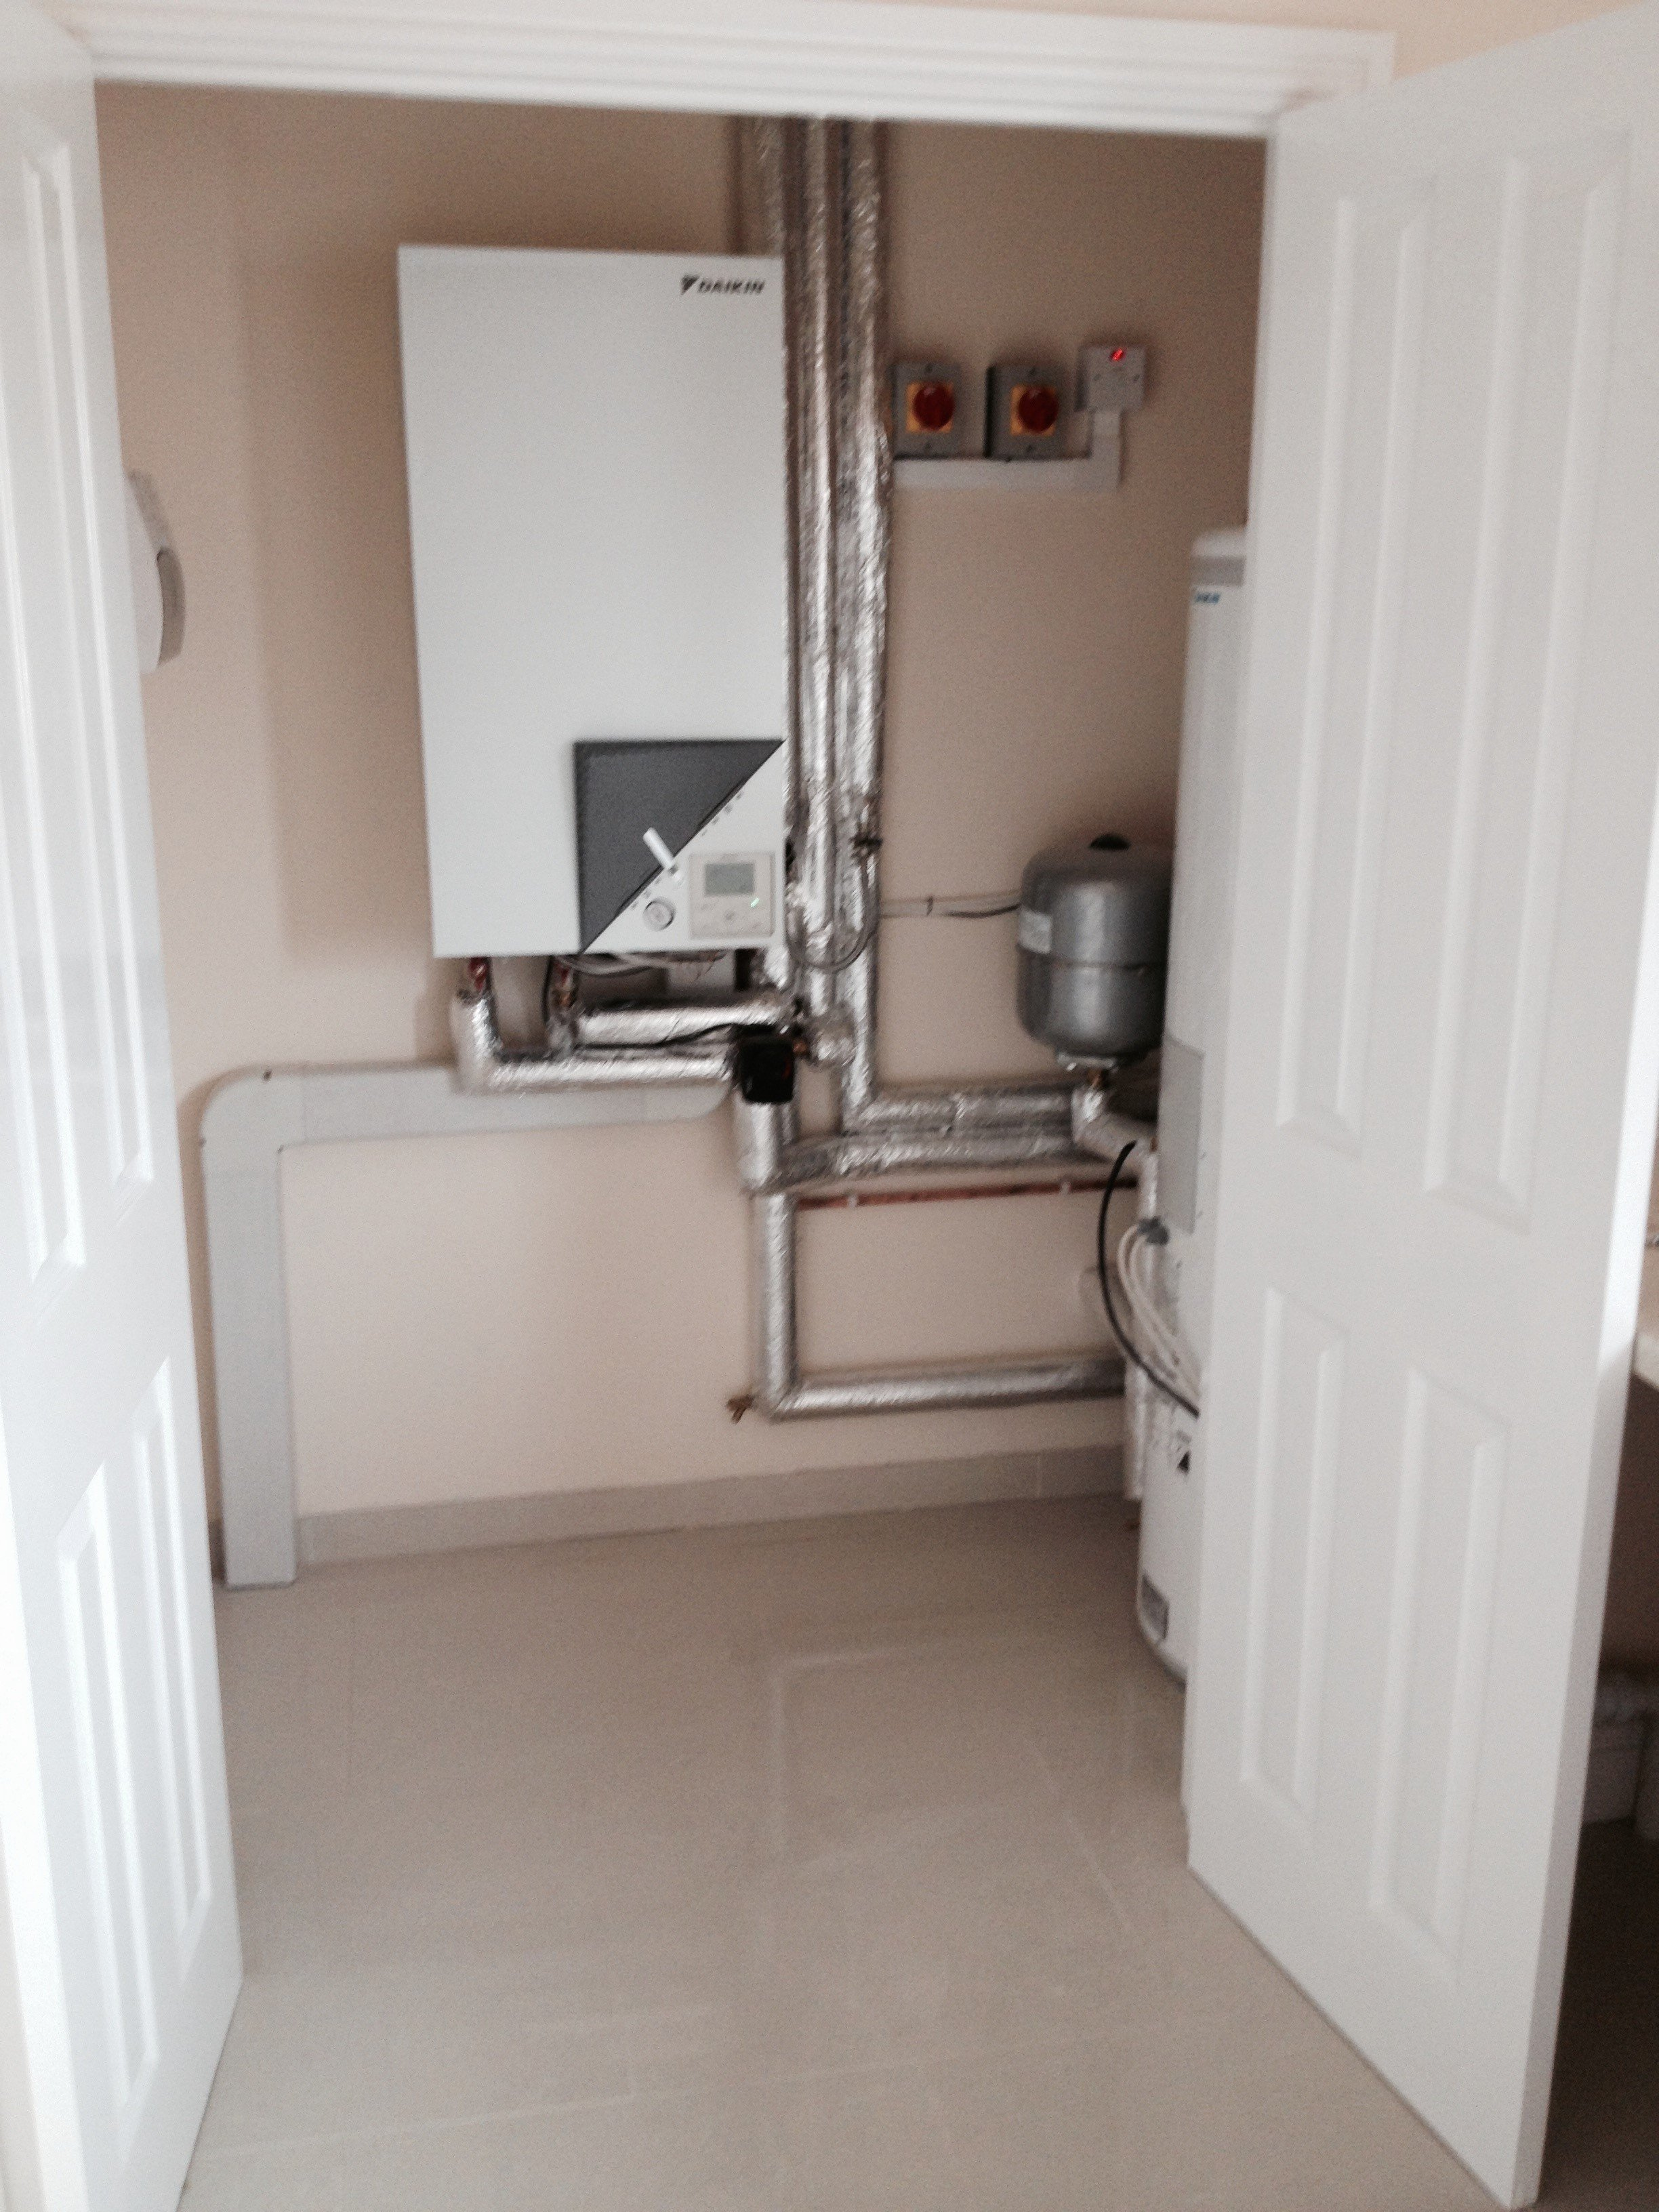 Quality heating solutions